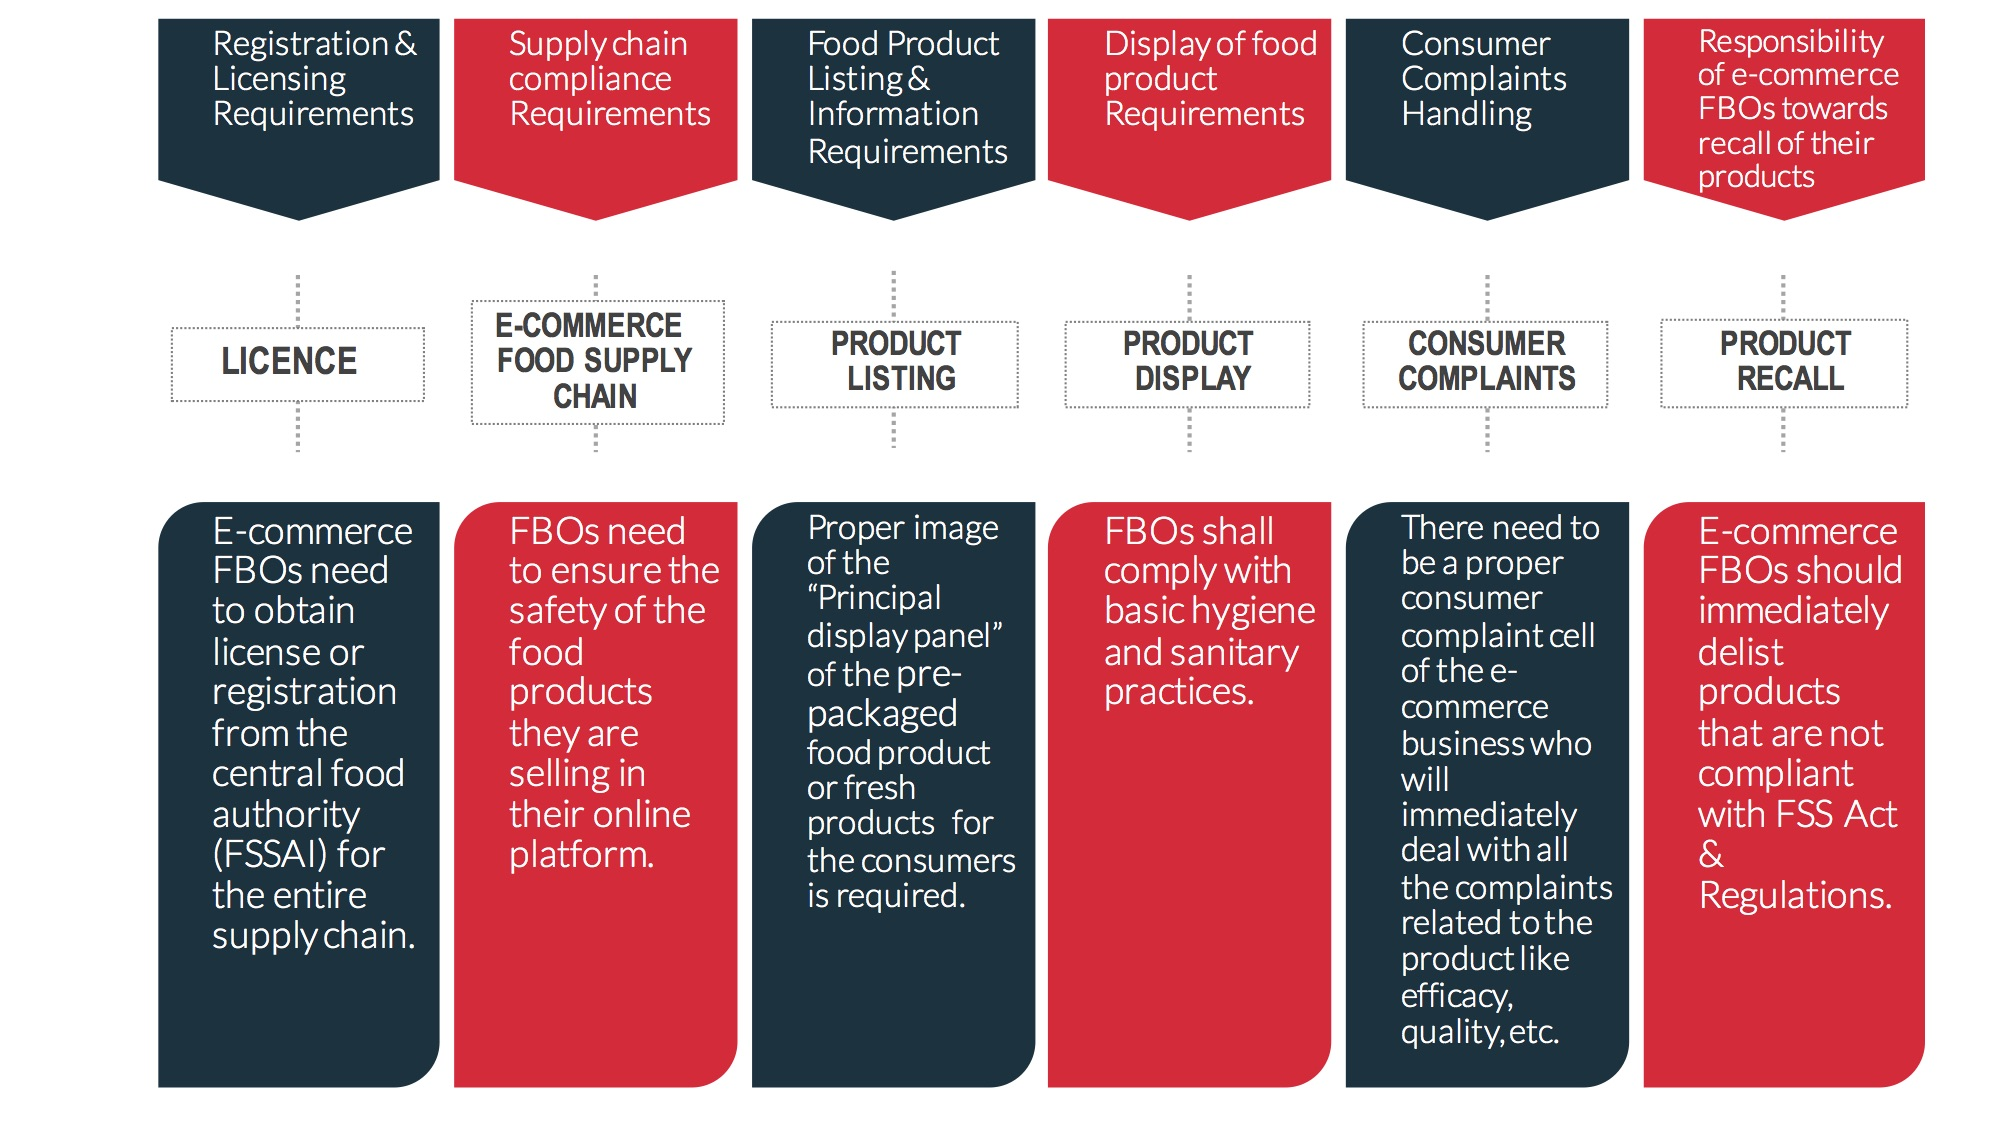 REGULATORY REQUIREMENTS FOR E-COMMERCE FOOD BUSINESS